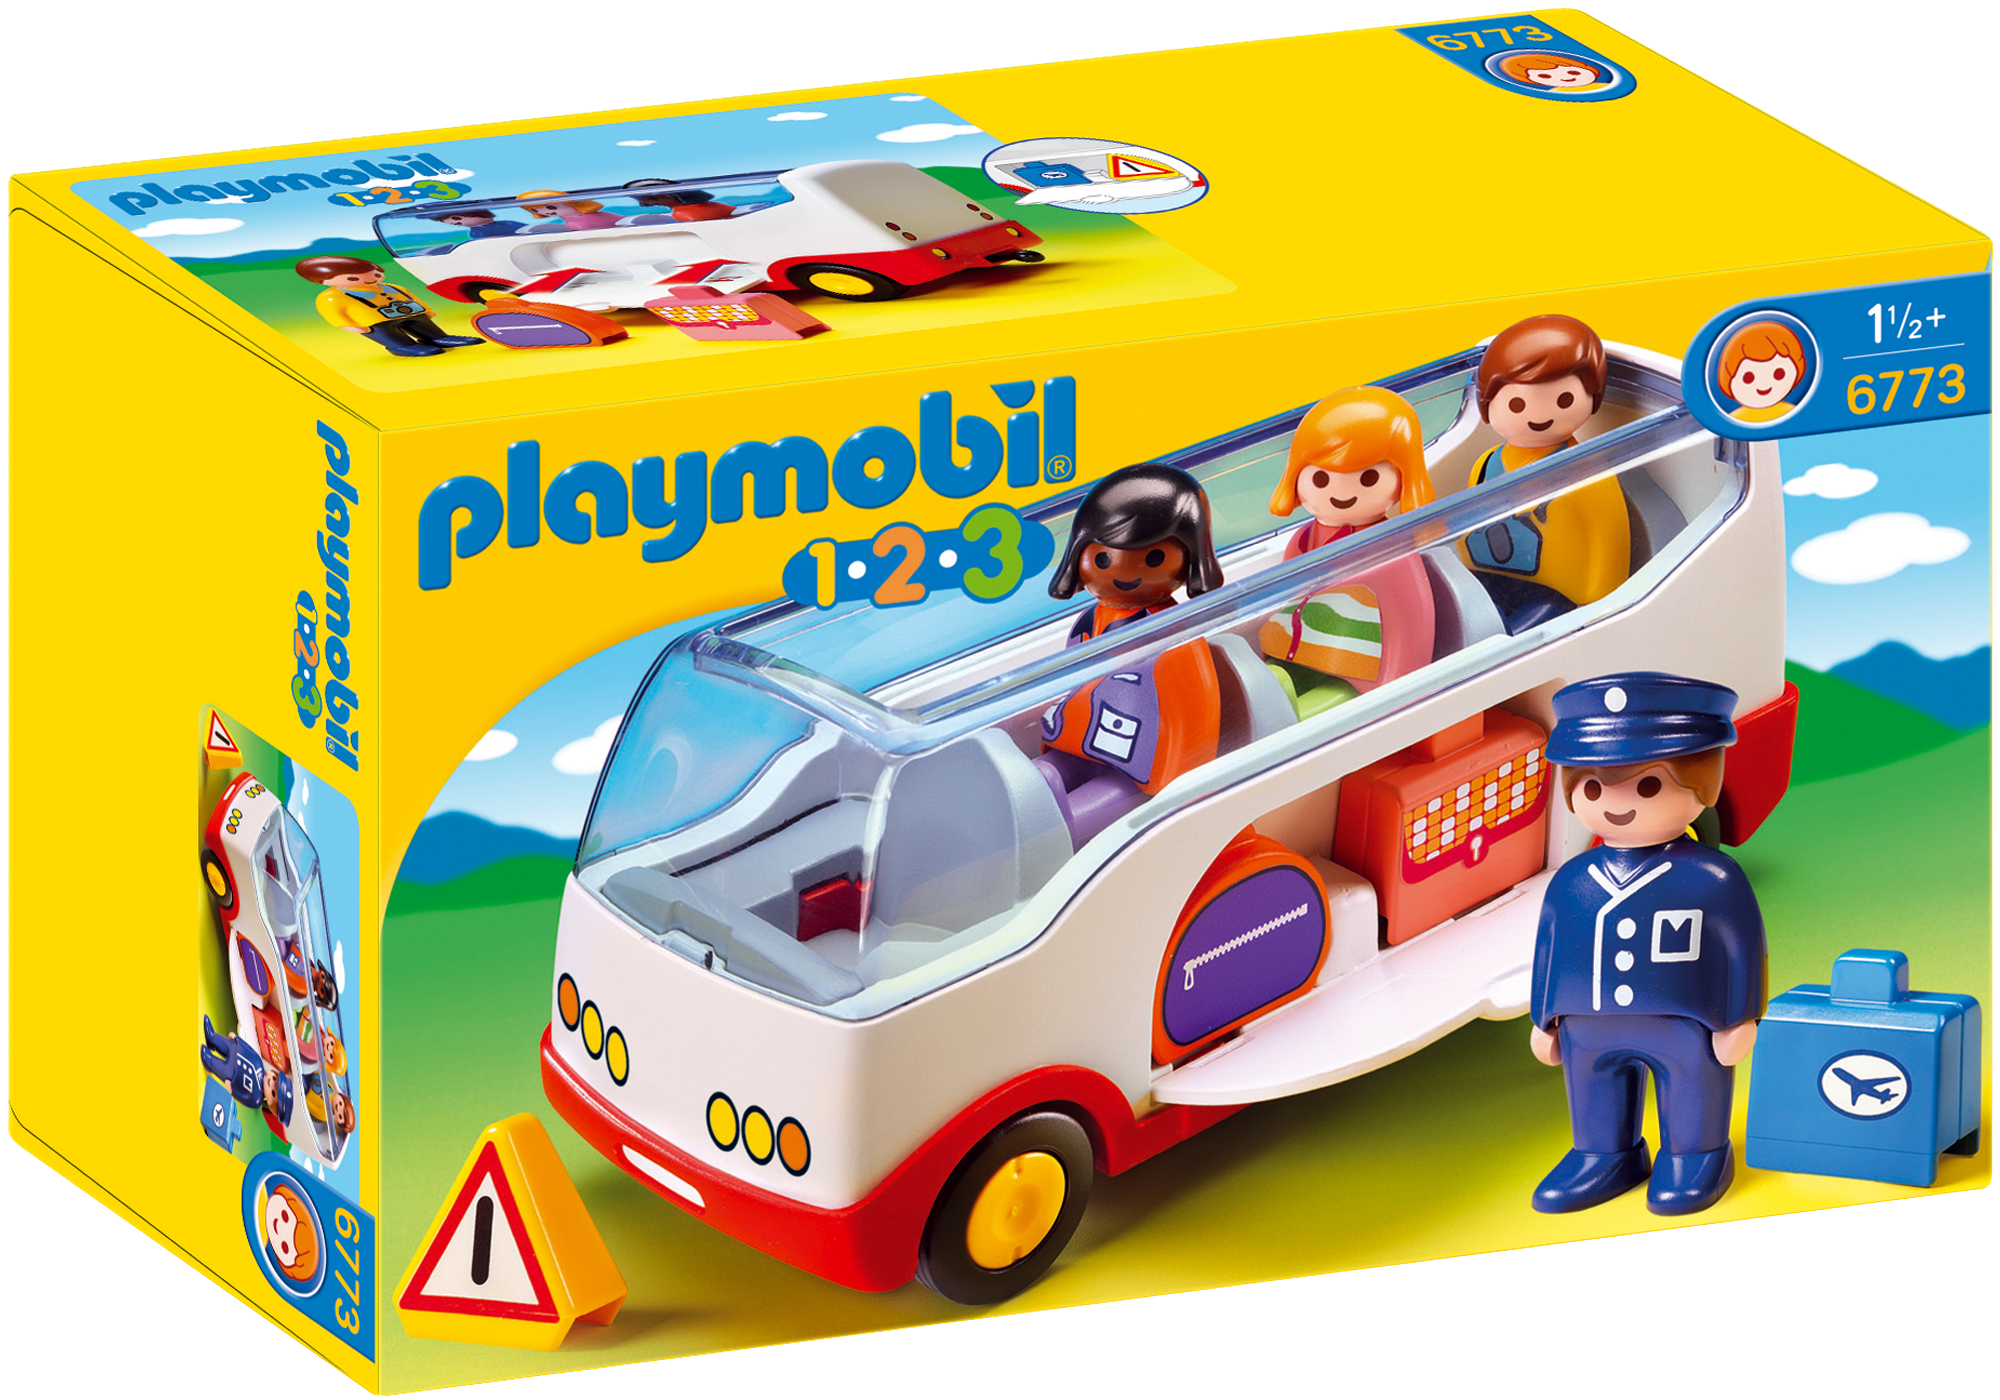 http://media.playmobil.com/i/playmobil/6773_product_box_front/1.2.3 Airport Shuttle Bus